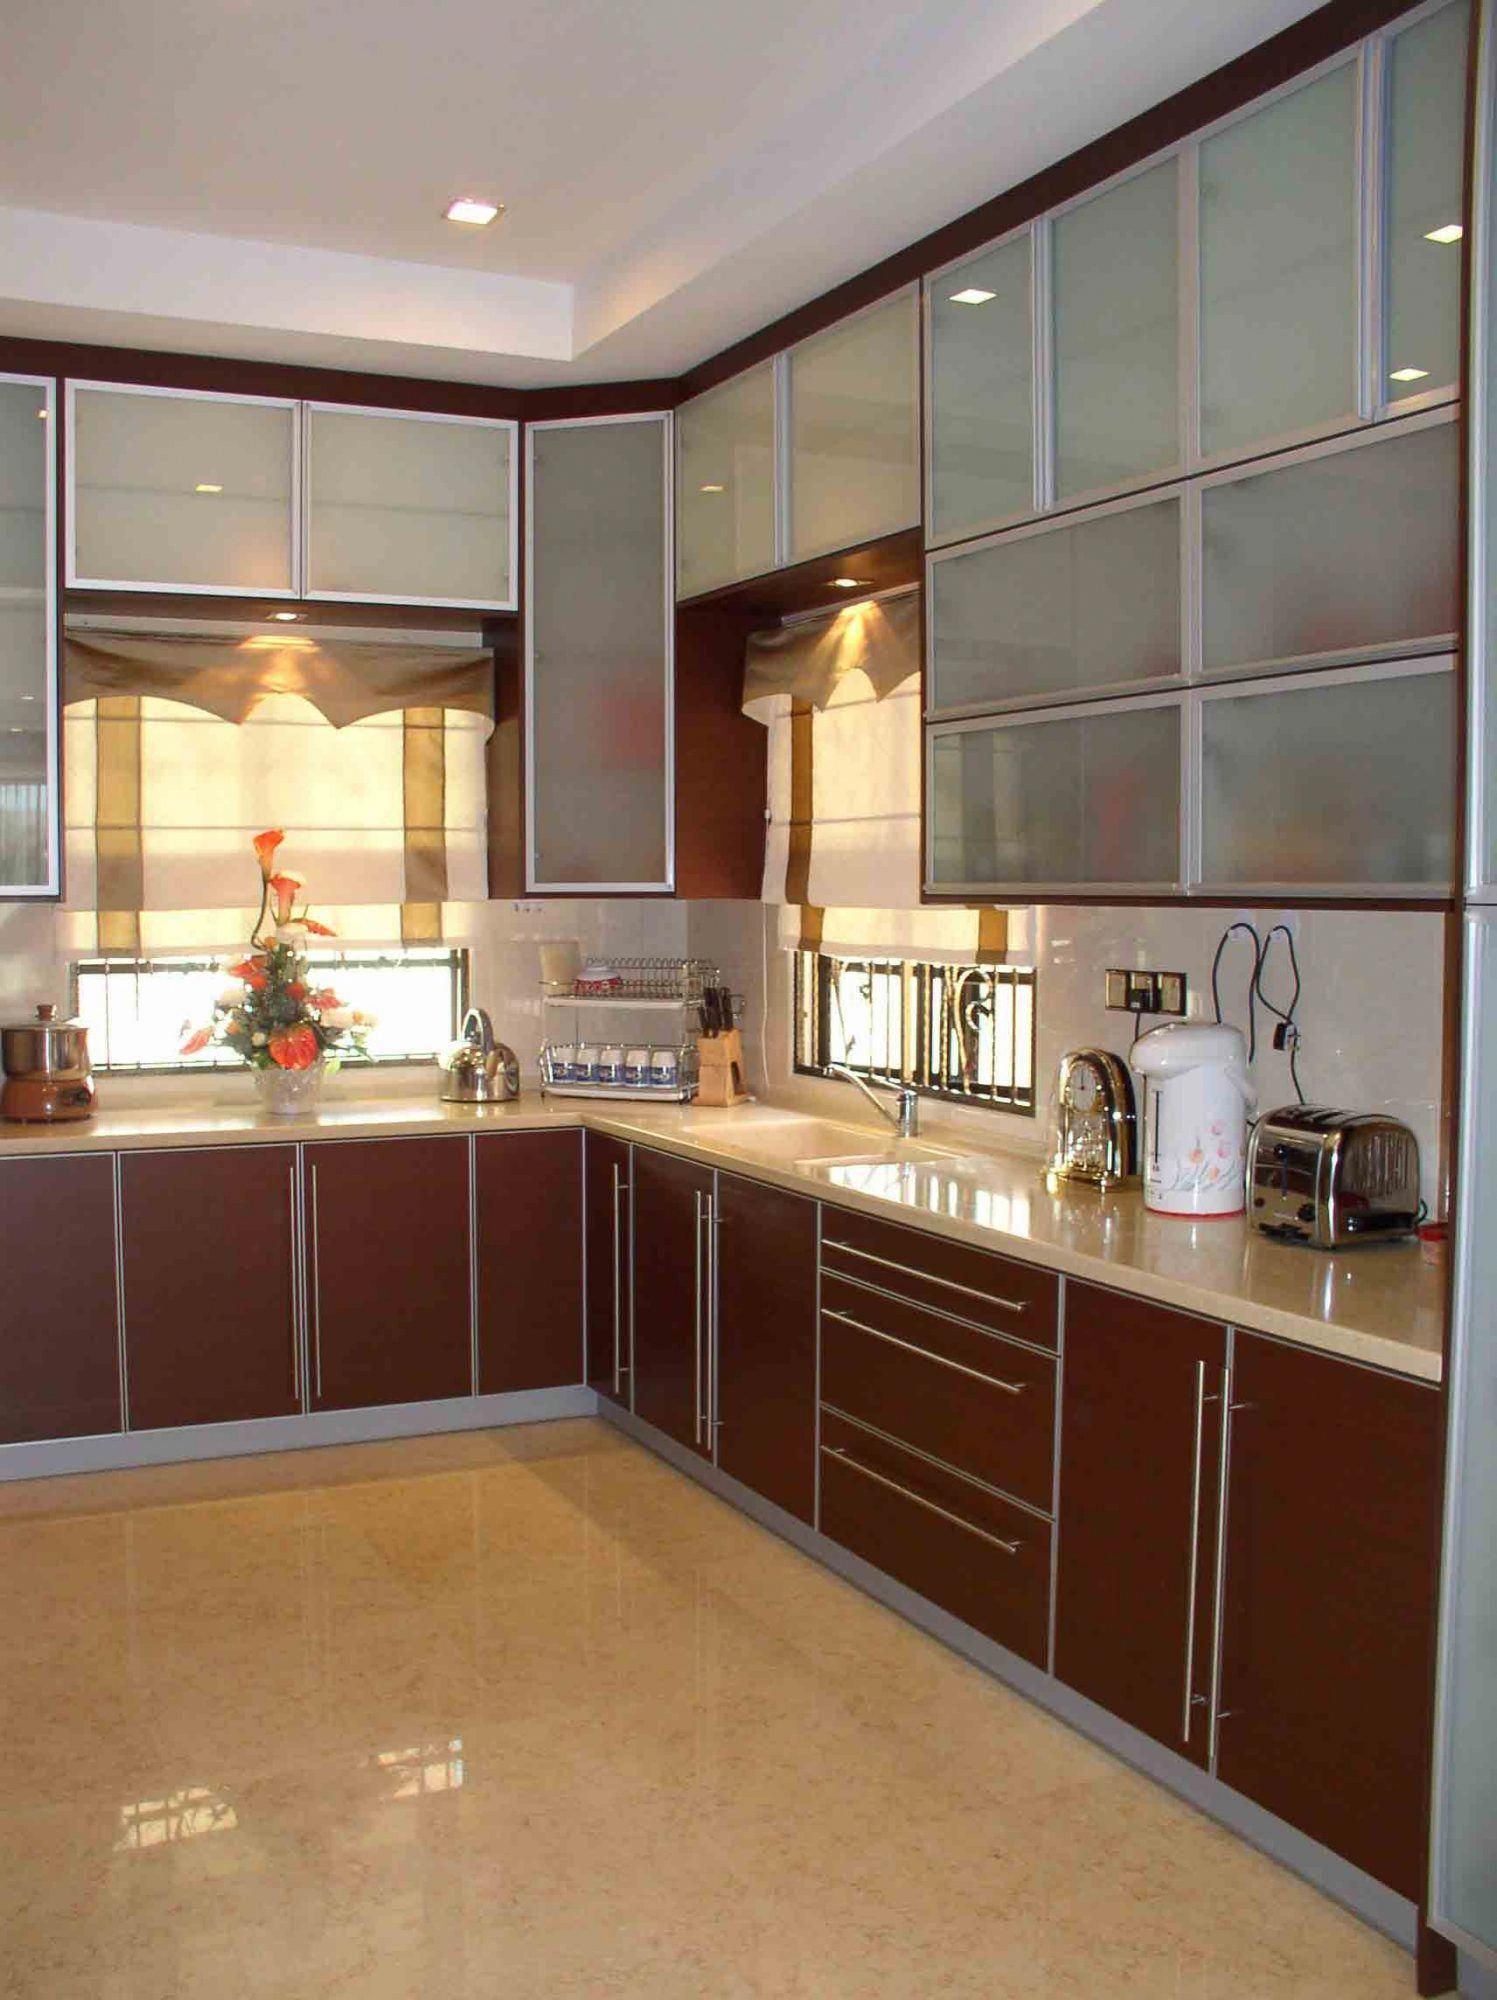 Your Pinspiration for modular kitchen designs in India ...